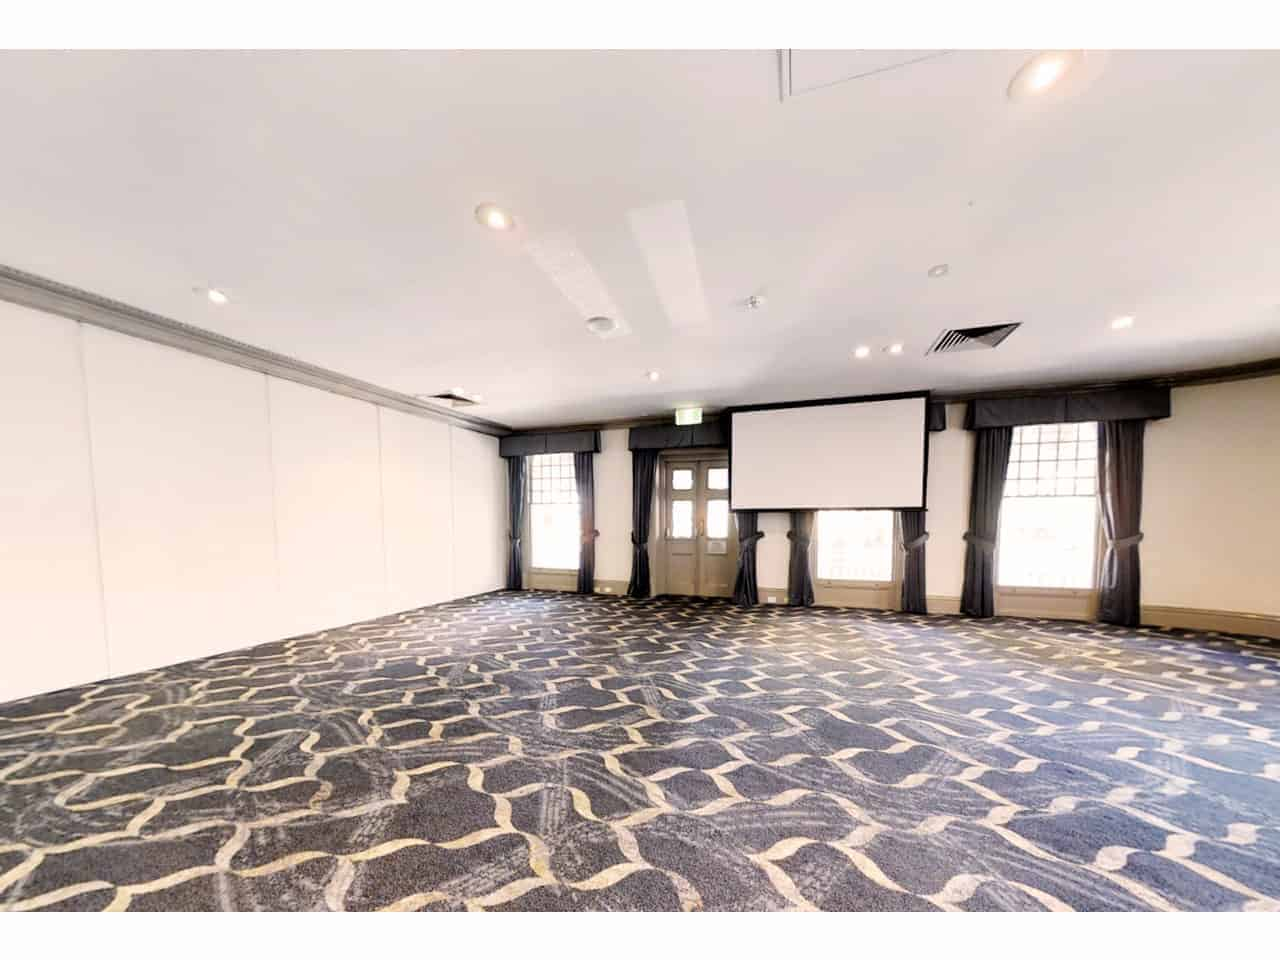 Perth venue hire